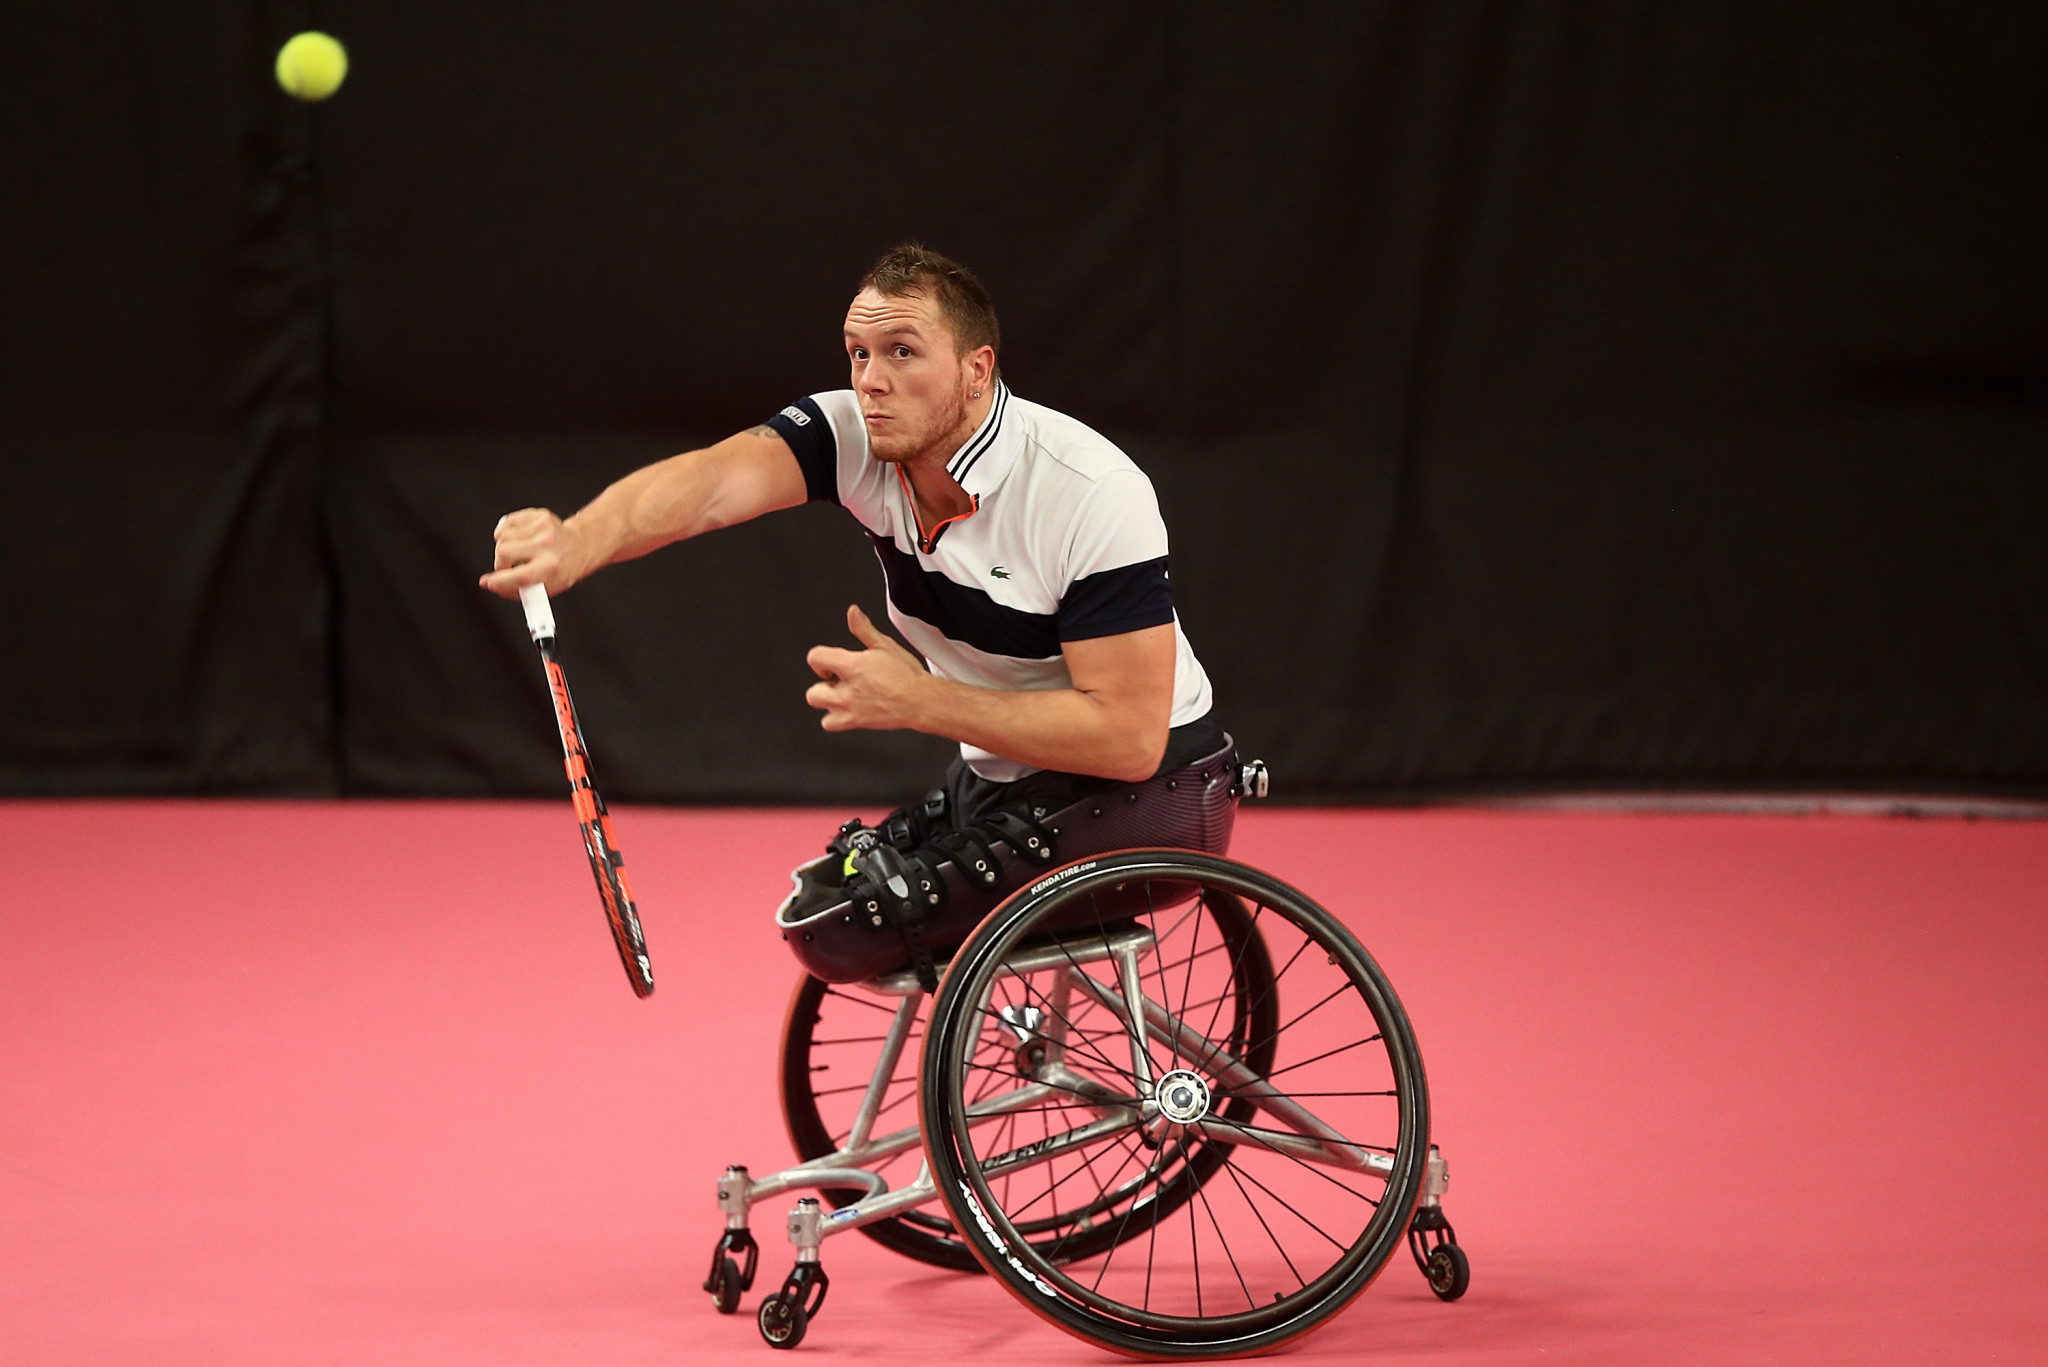 France continue strong start to Wheelchair Tennis World Team Cup